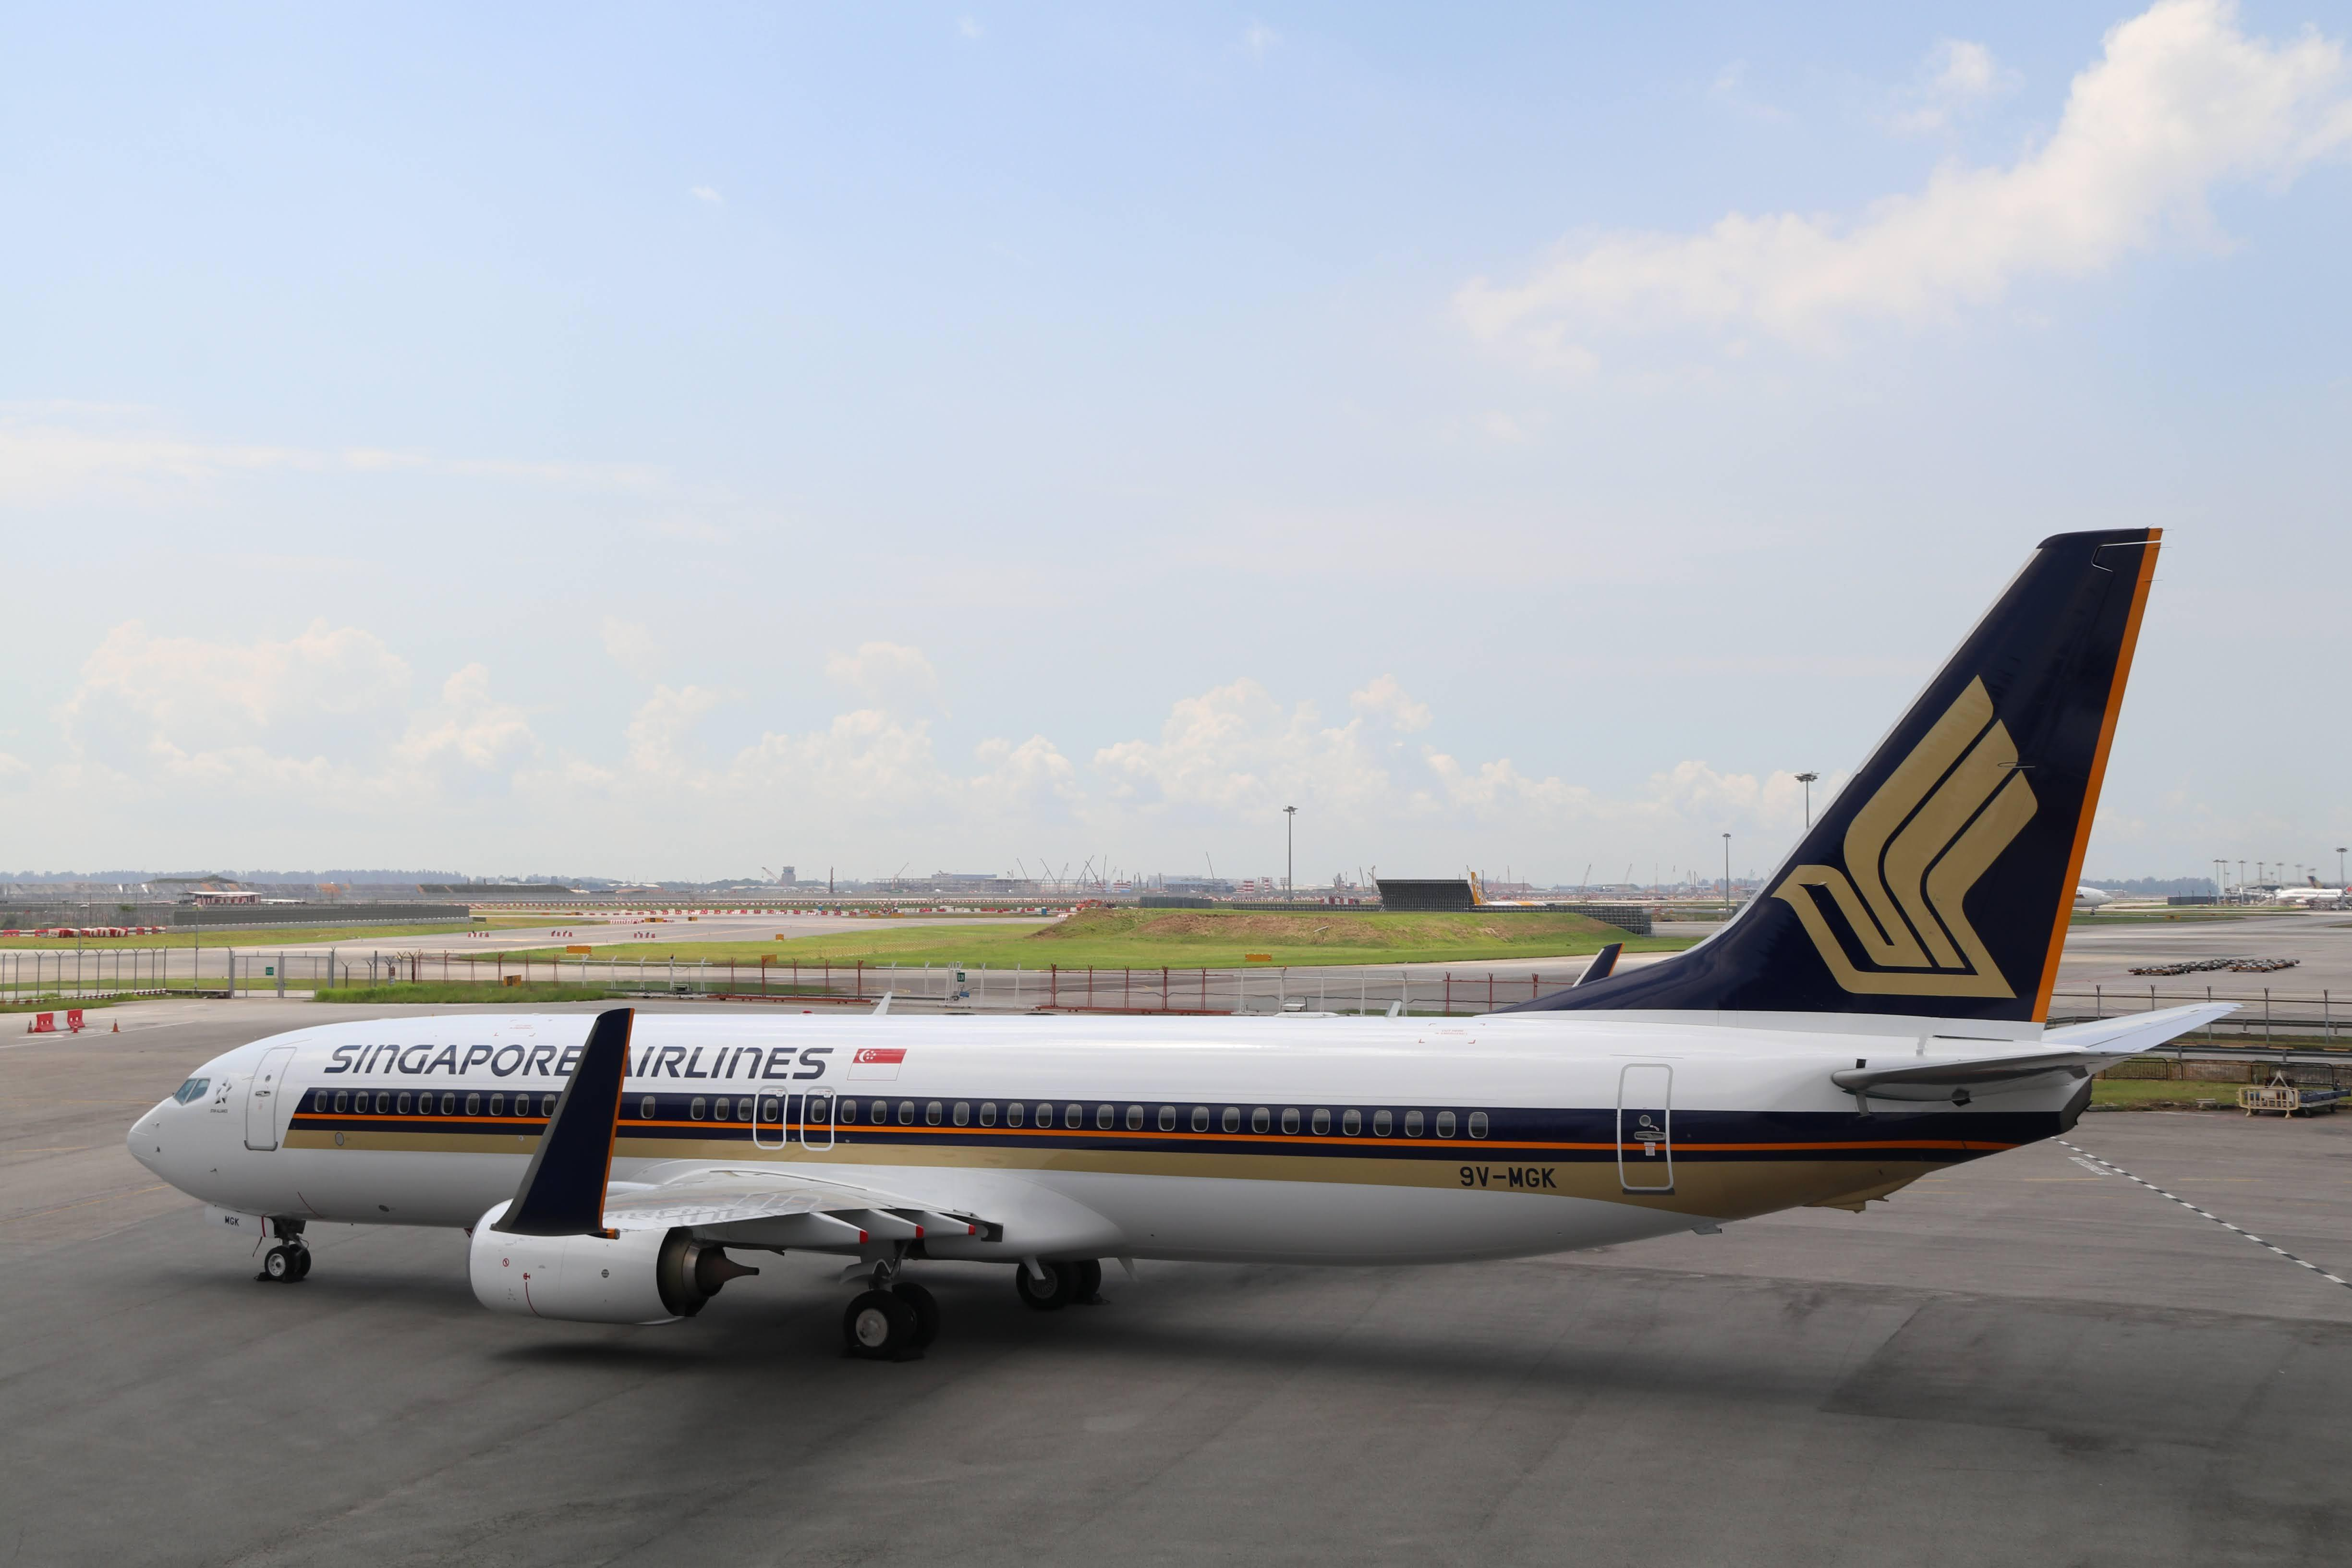 Singapore Airlines Boeing 737-800